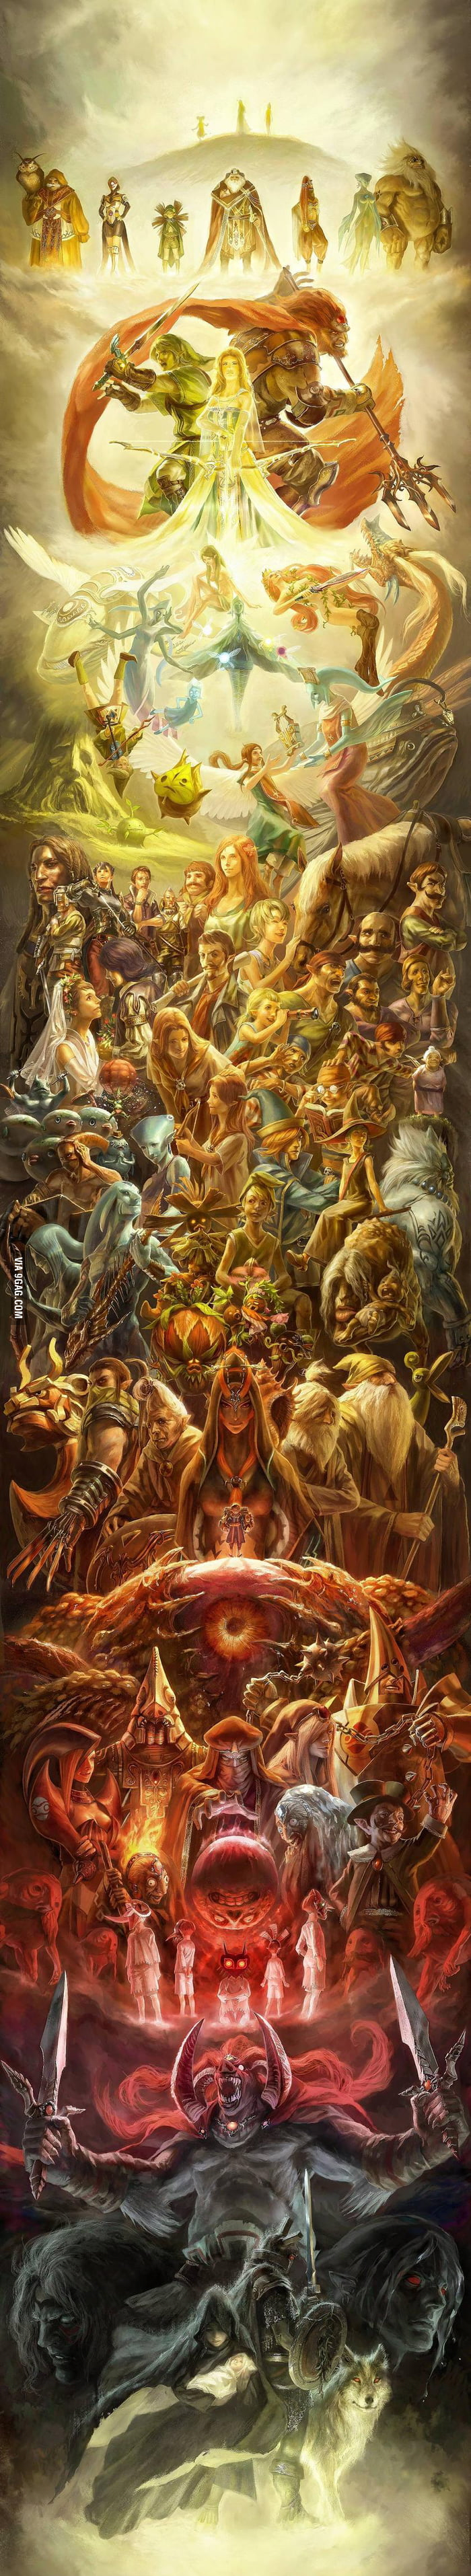 Just an amazing Zelda pic